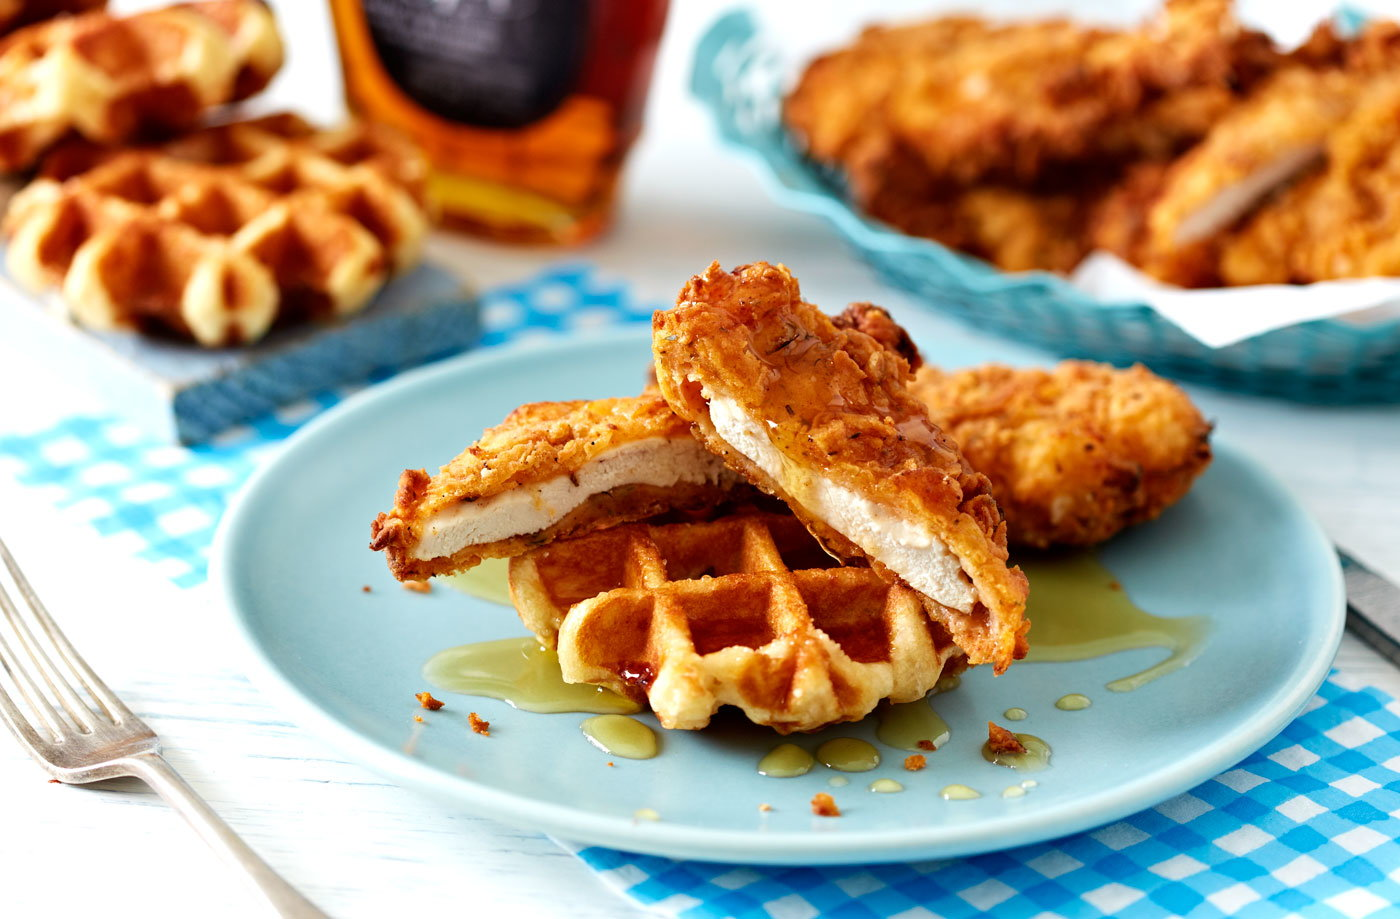 Sightly 05 Buttermilk Ken Gravy Ken Waffles Menu Waffles Lgh C94bb733 3398 49c4 B7ab 51e43545339e 0 1400x919 Ken Waffles nice food Chicken  Waffles